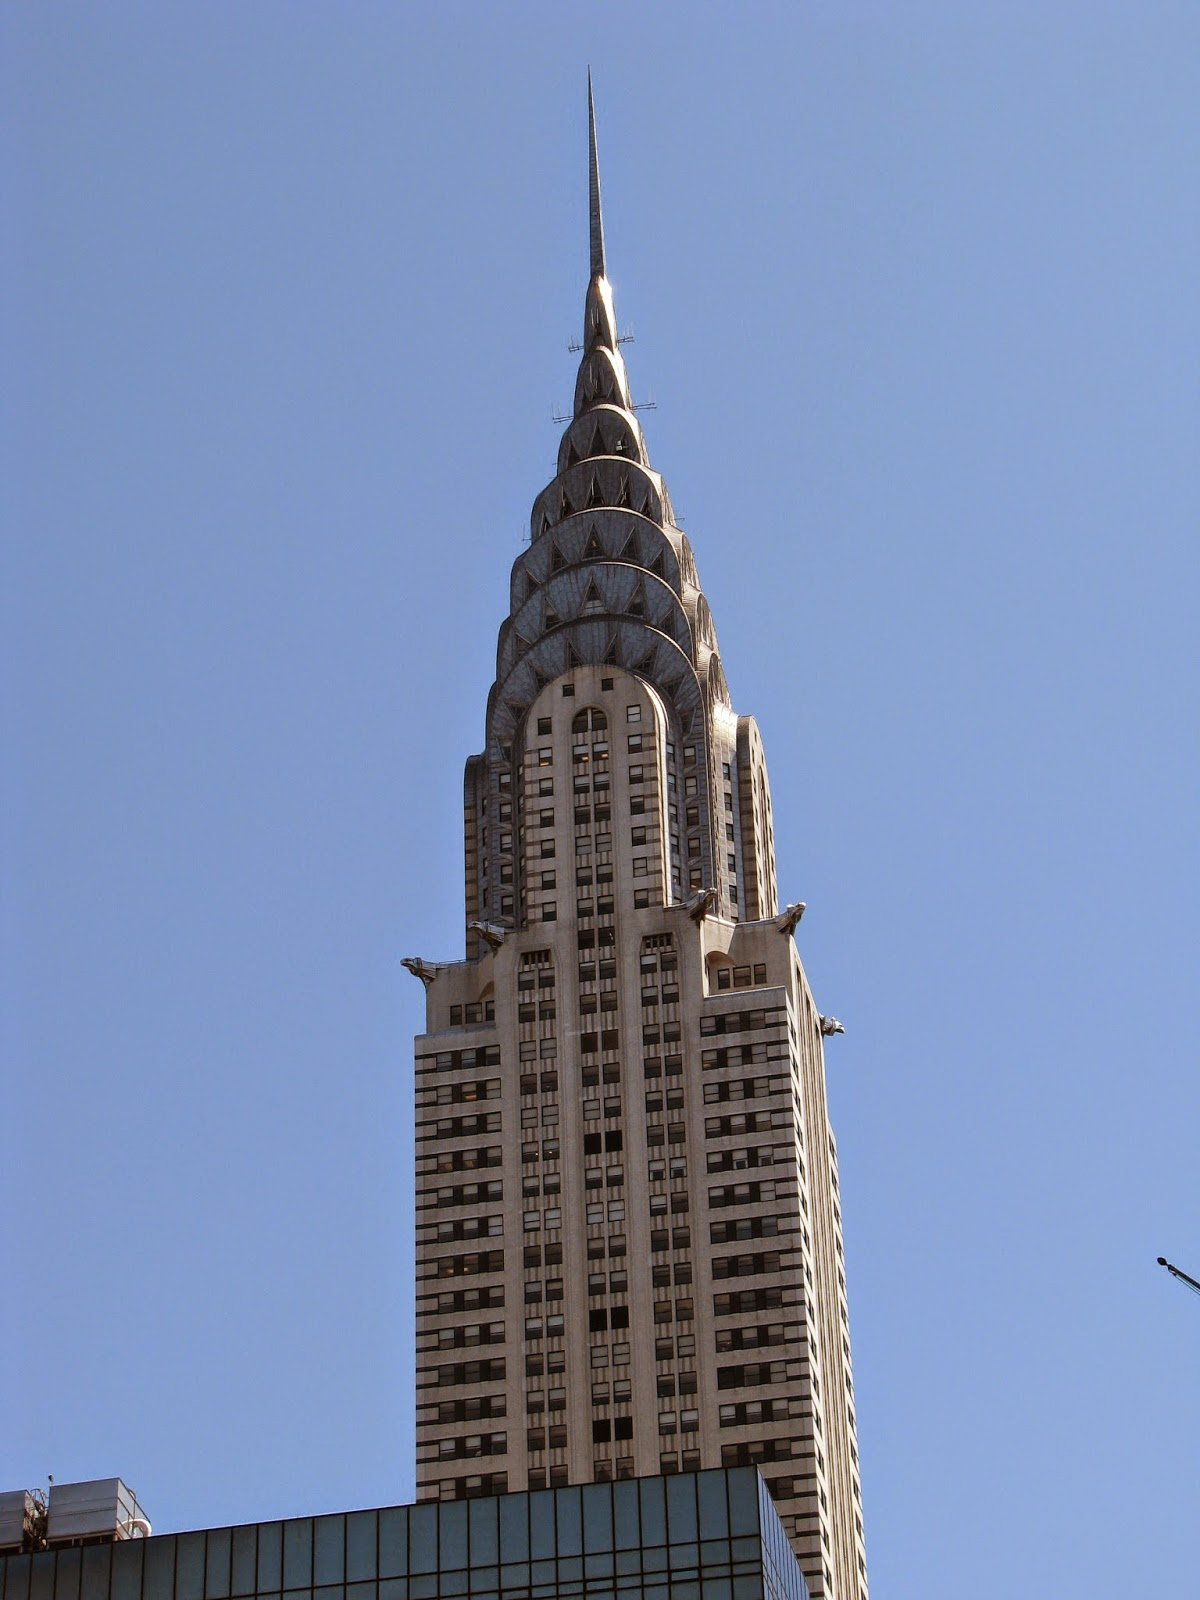 El edificio Chrysler